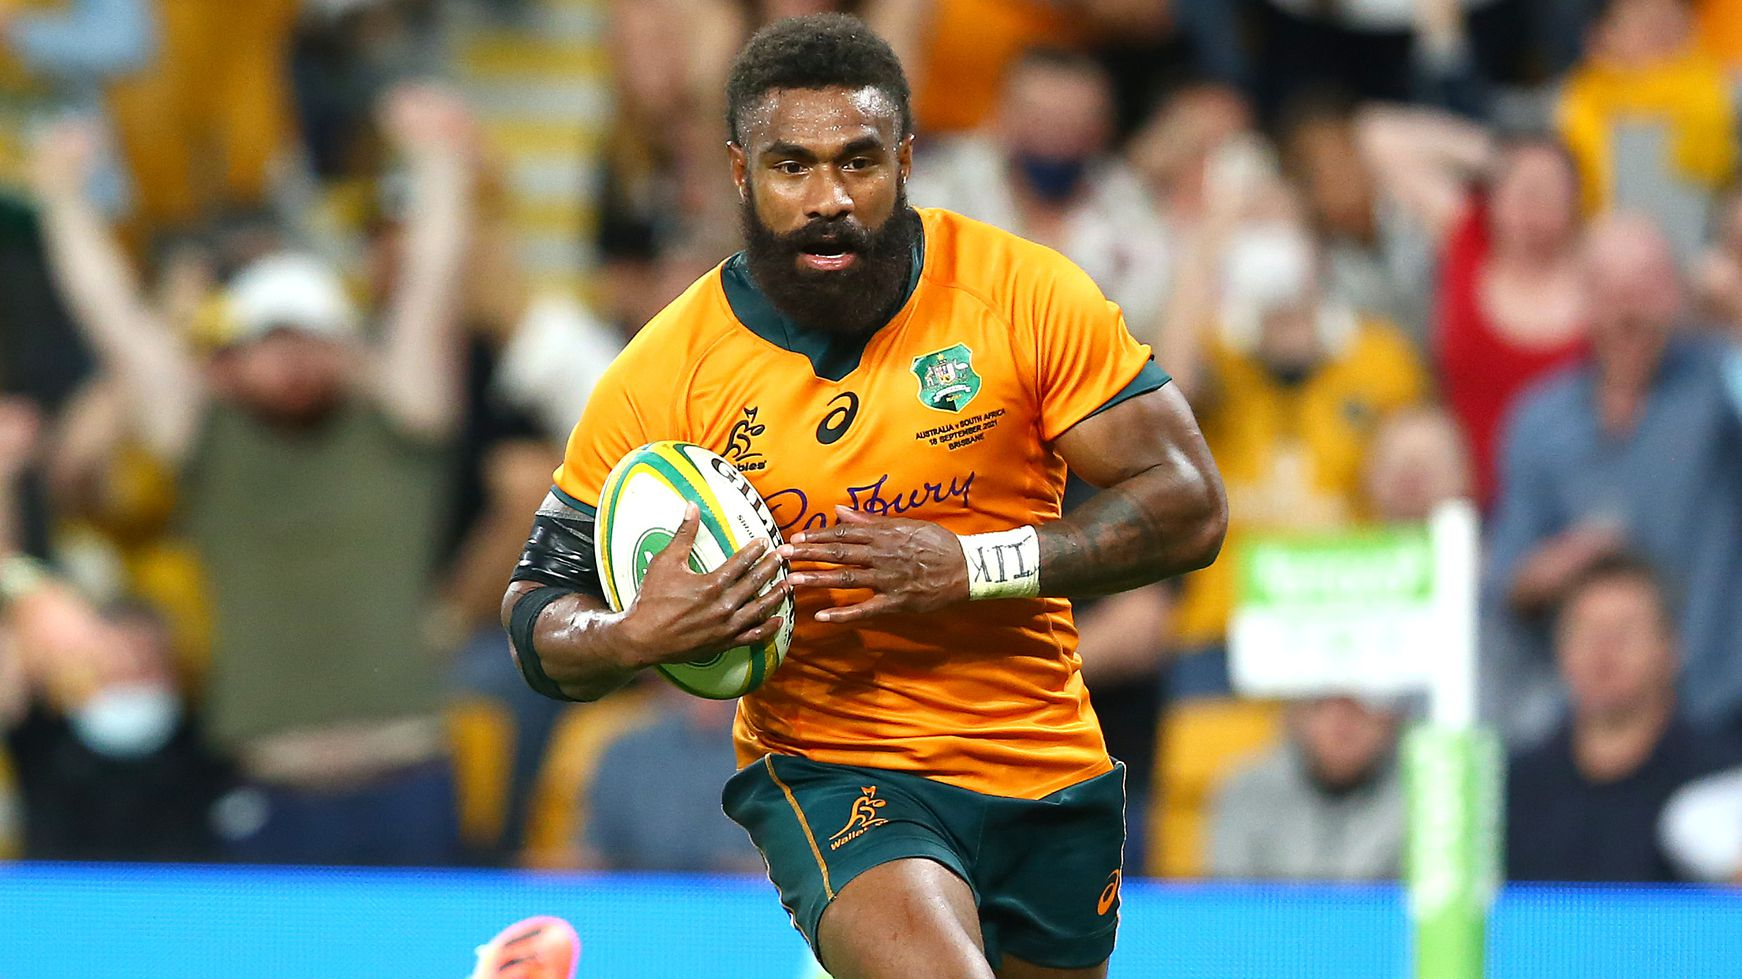 Wallabies star to miss entire spring tour